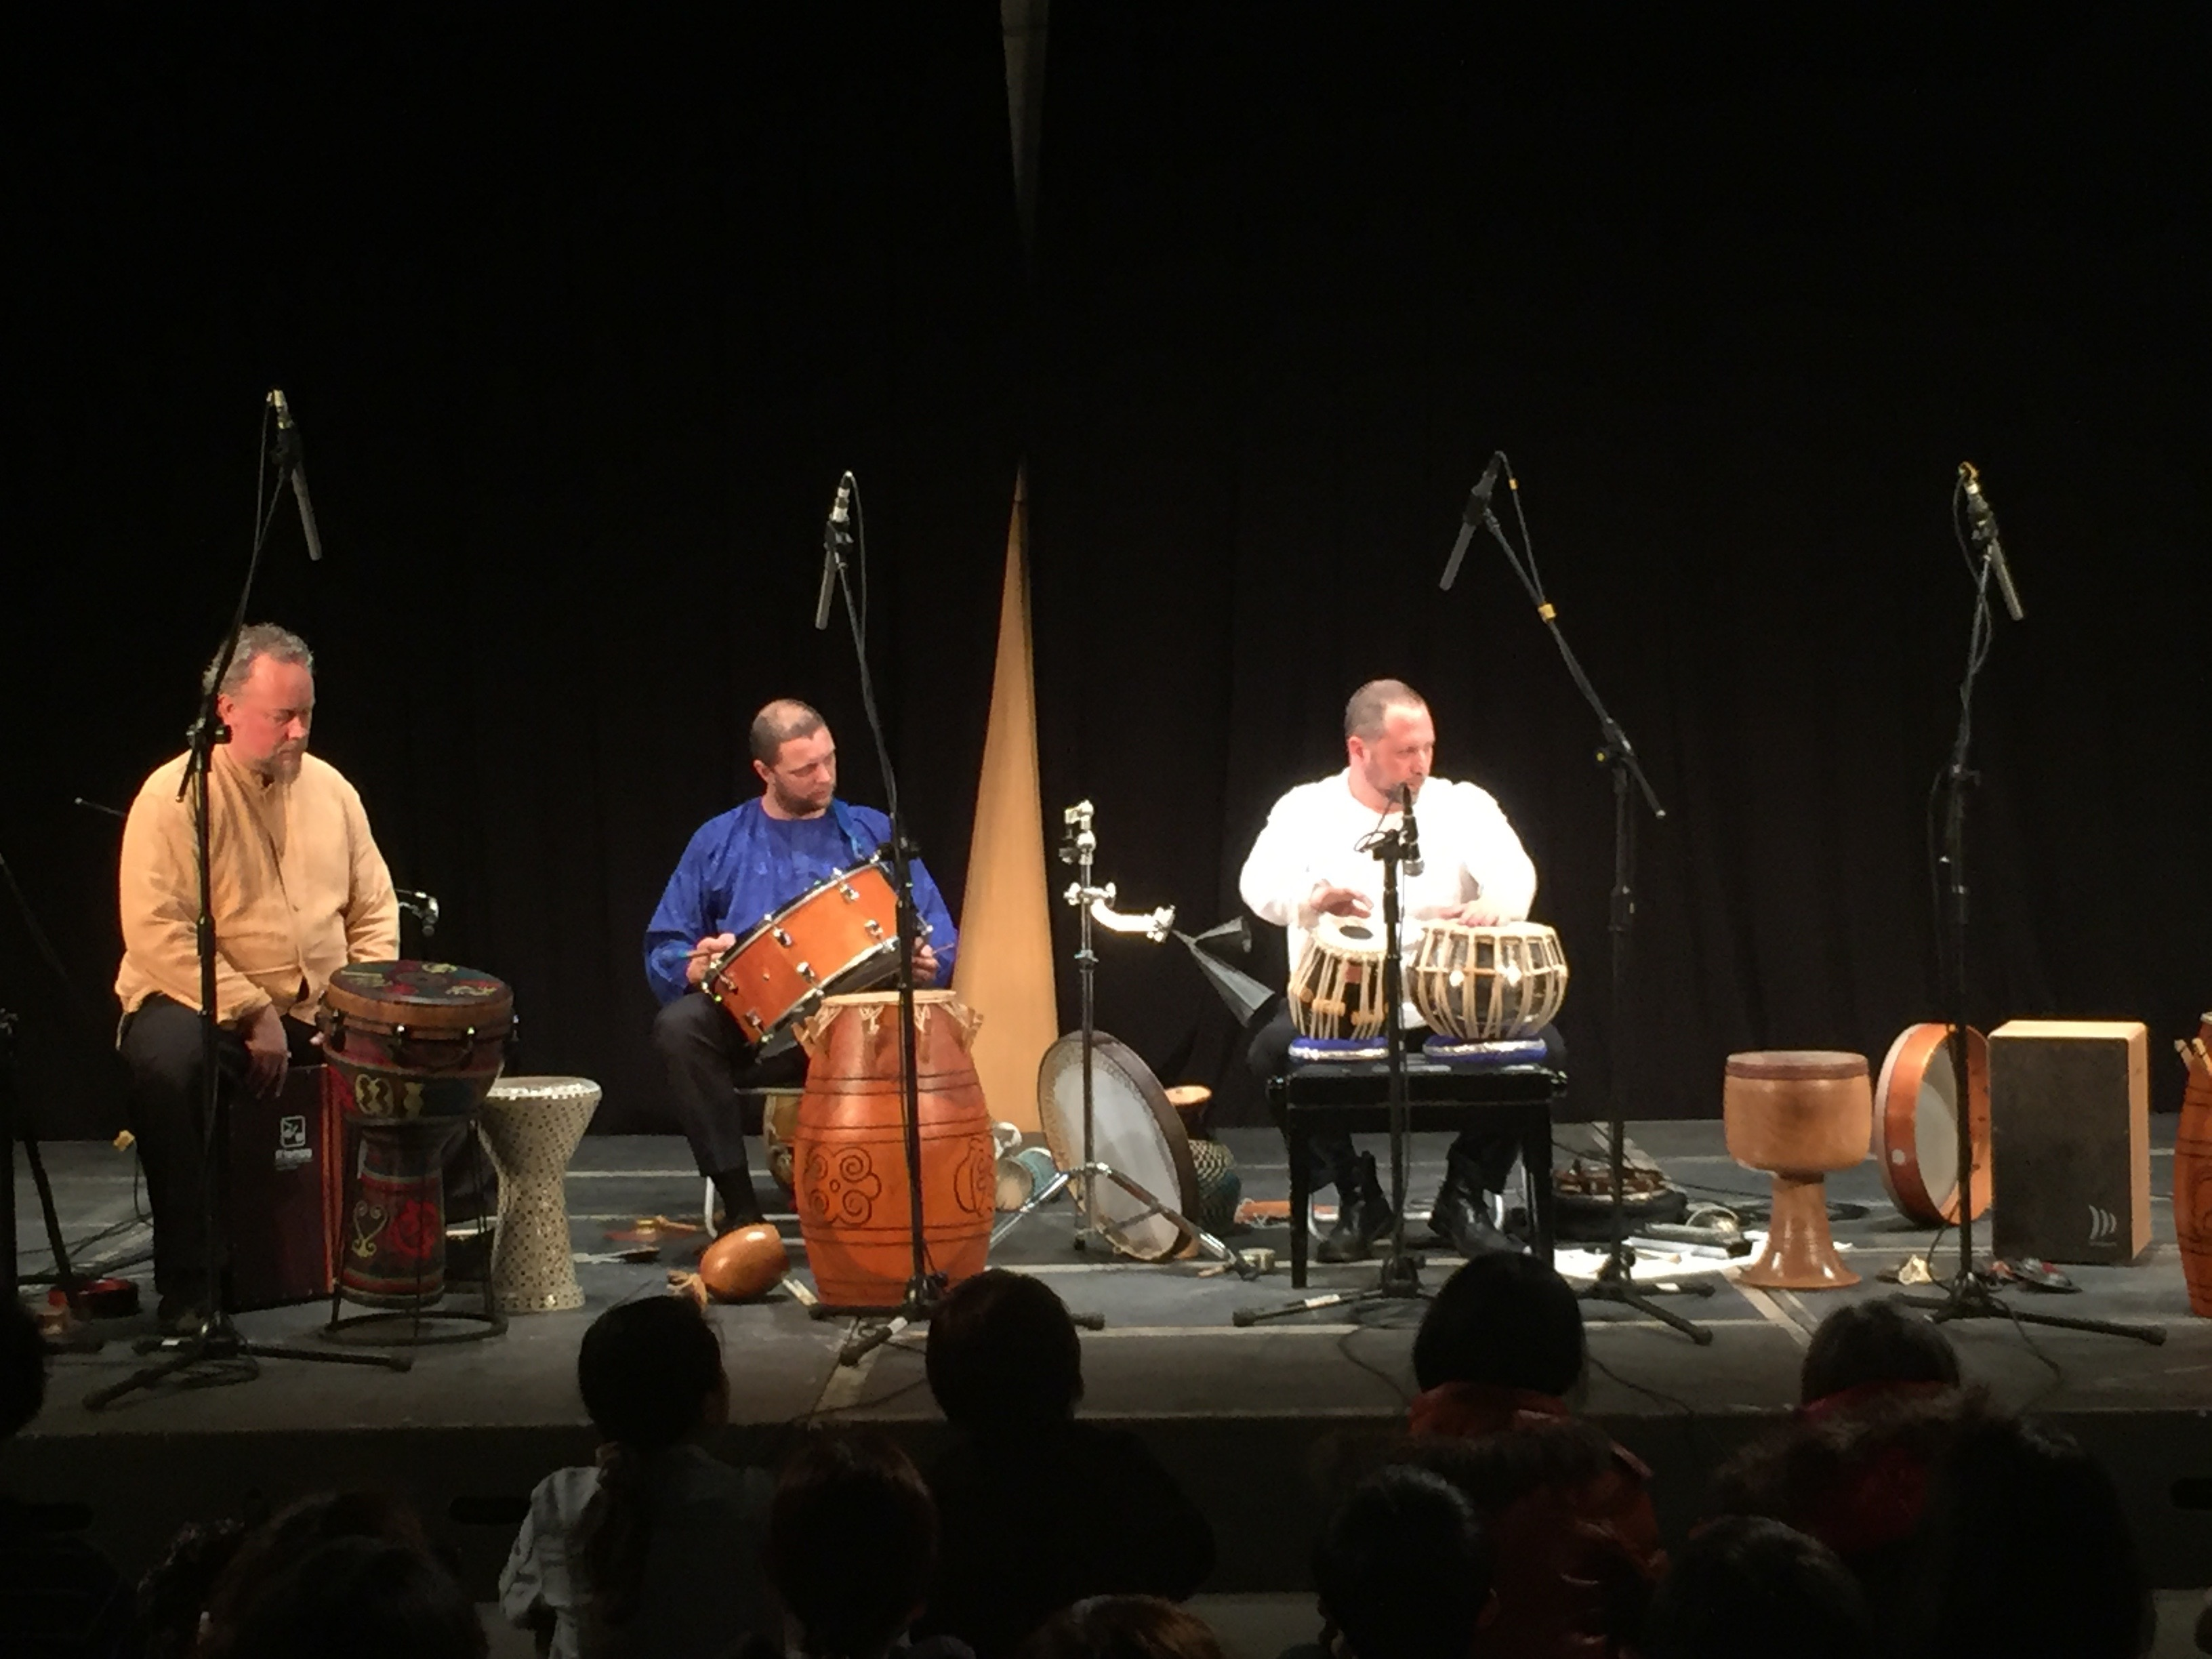 Hands On\'Semble at Ten Drum in Taiwan - February 2016